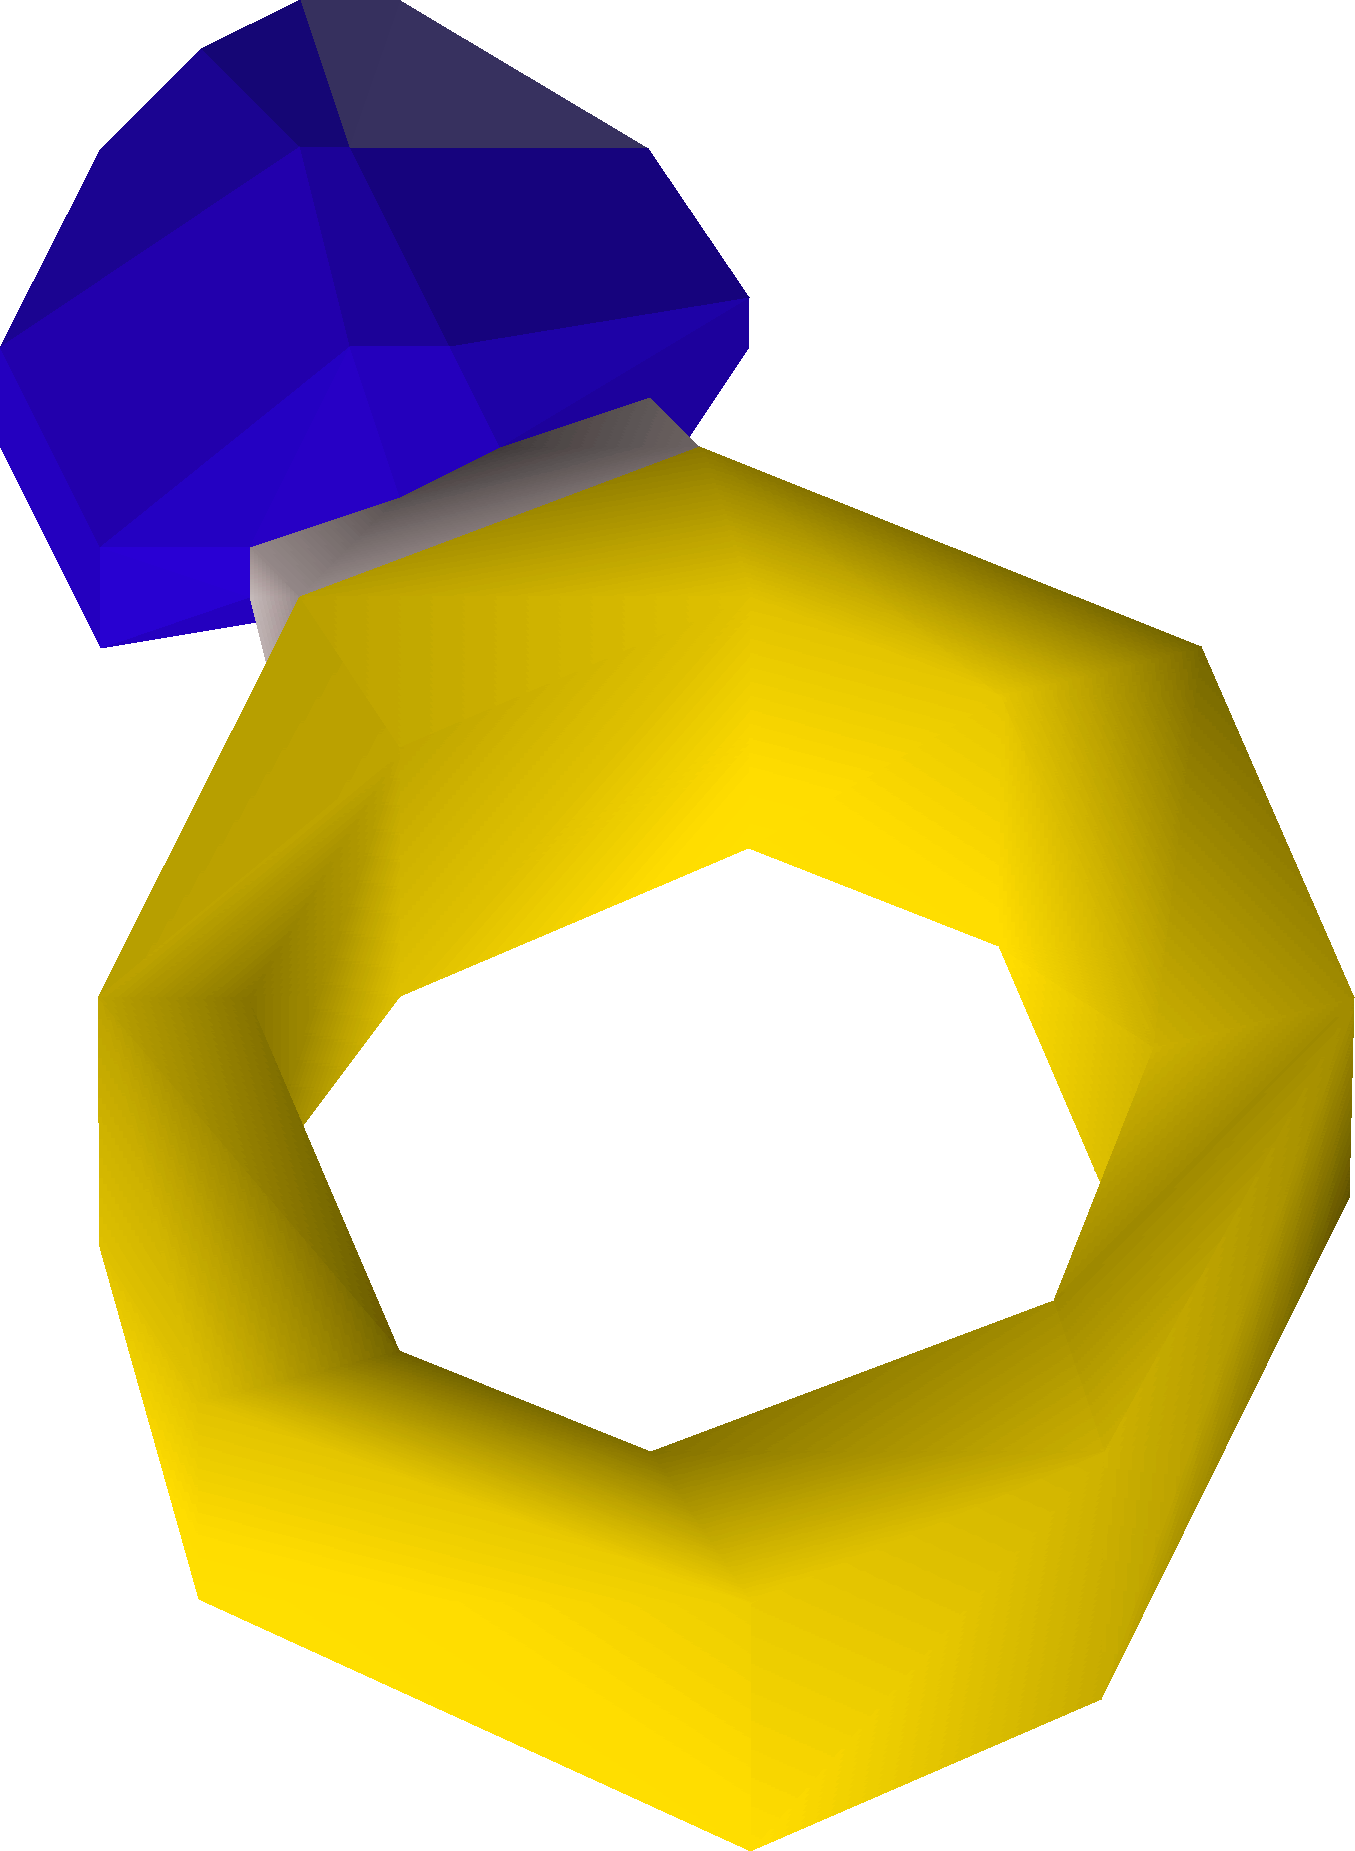 Sapphire ring | Old School RuneScape Wiki | FANDOM powered